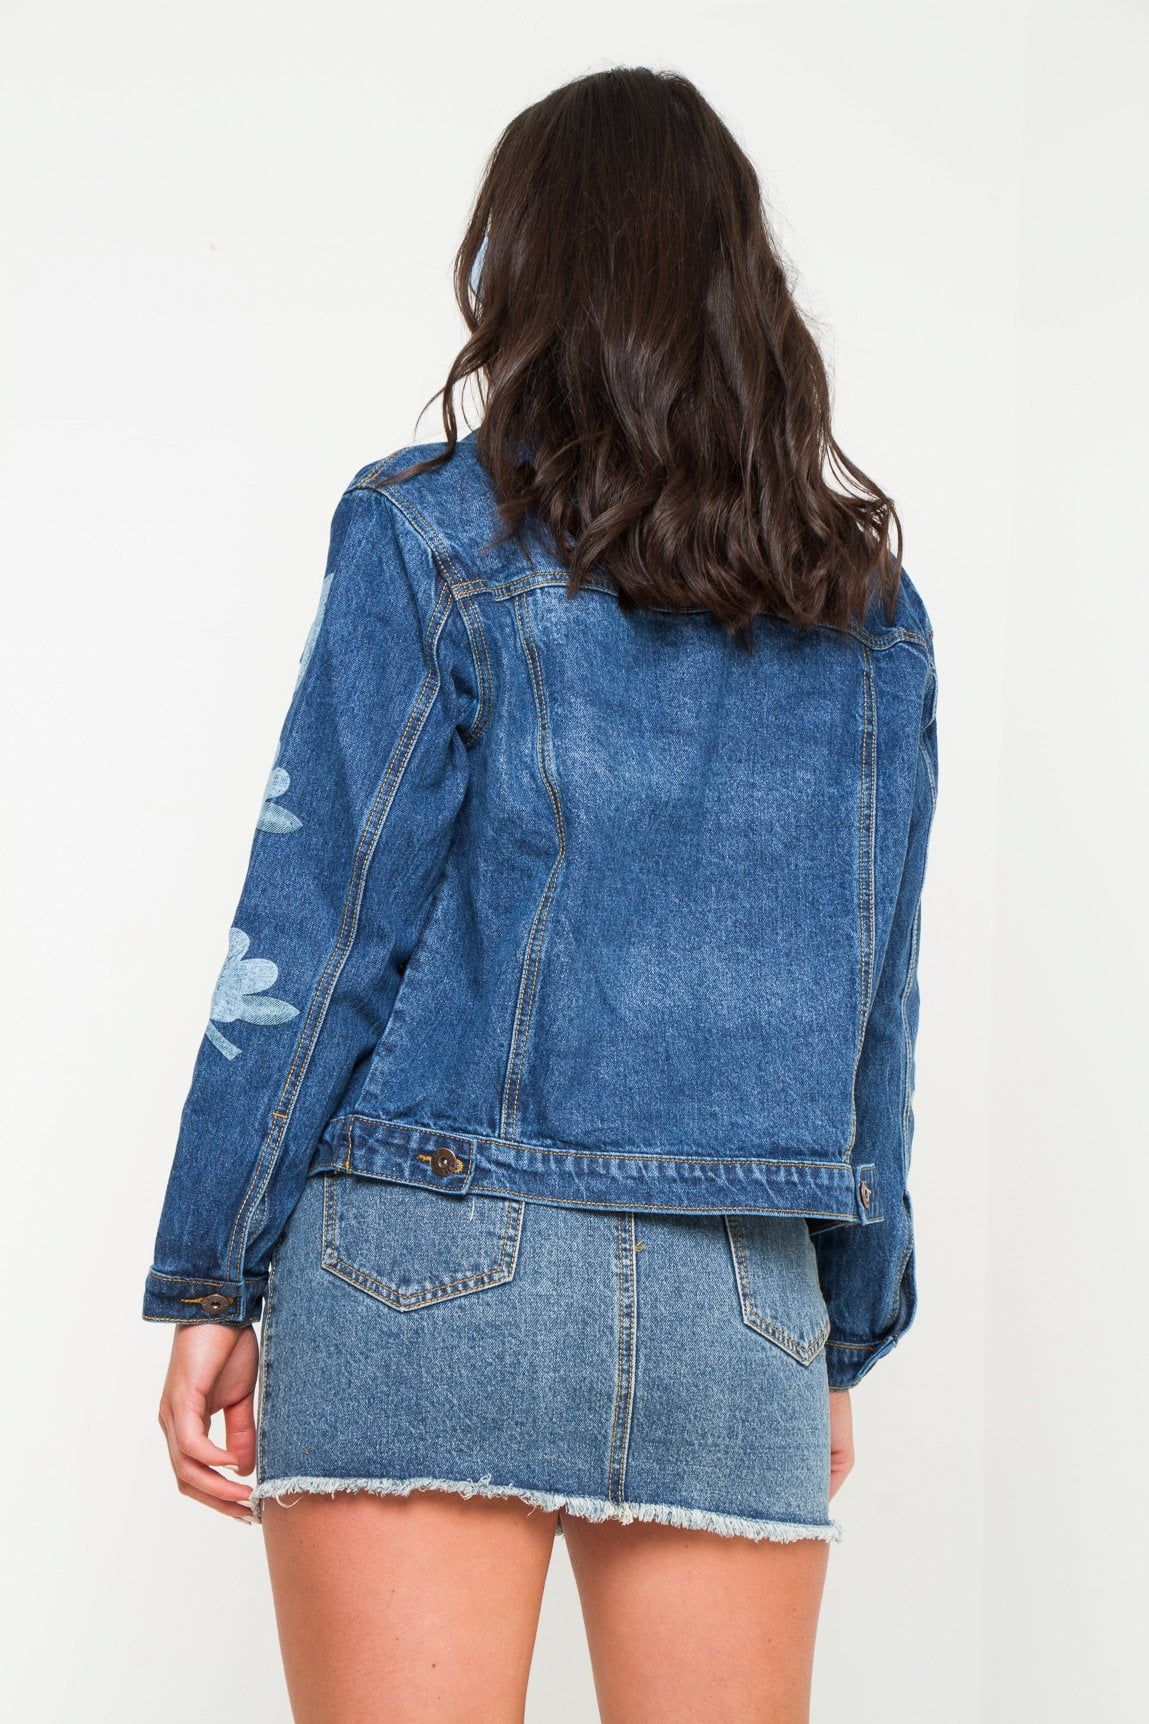 Boyfriend dark blue denim jacket with lilly print - Liquor N Poker  Liquor N Poker